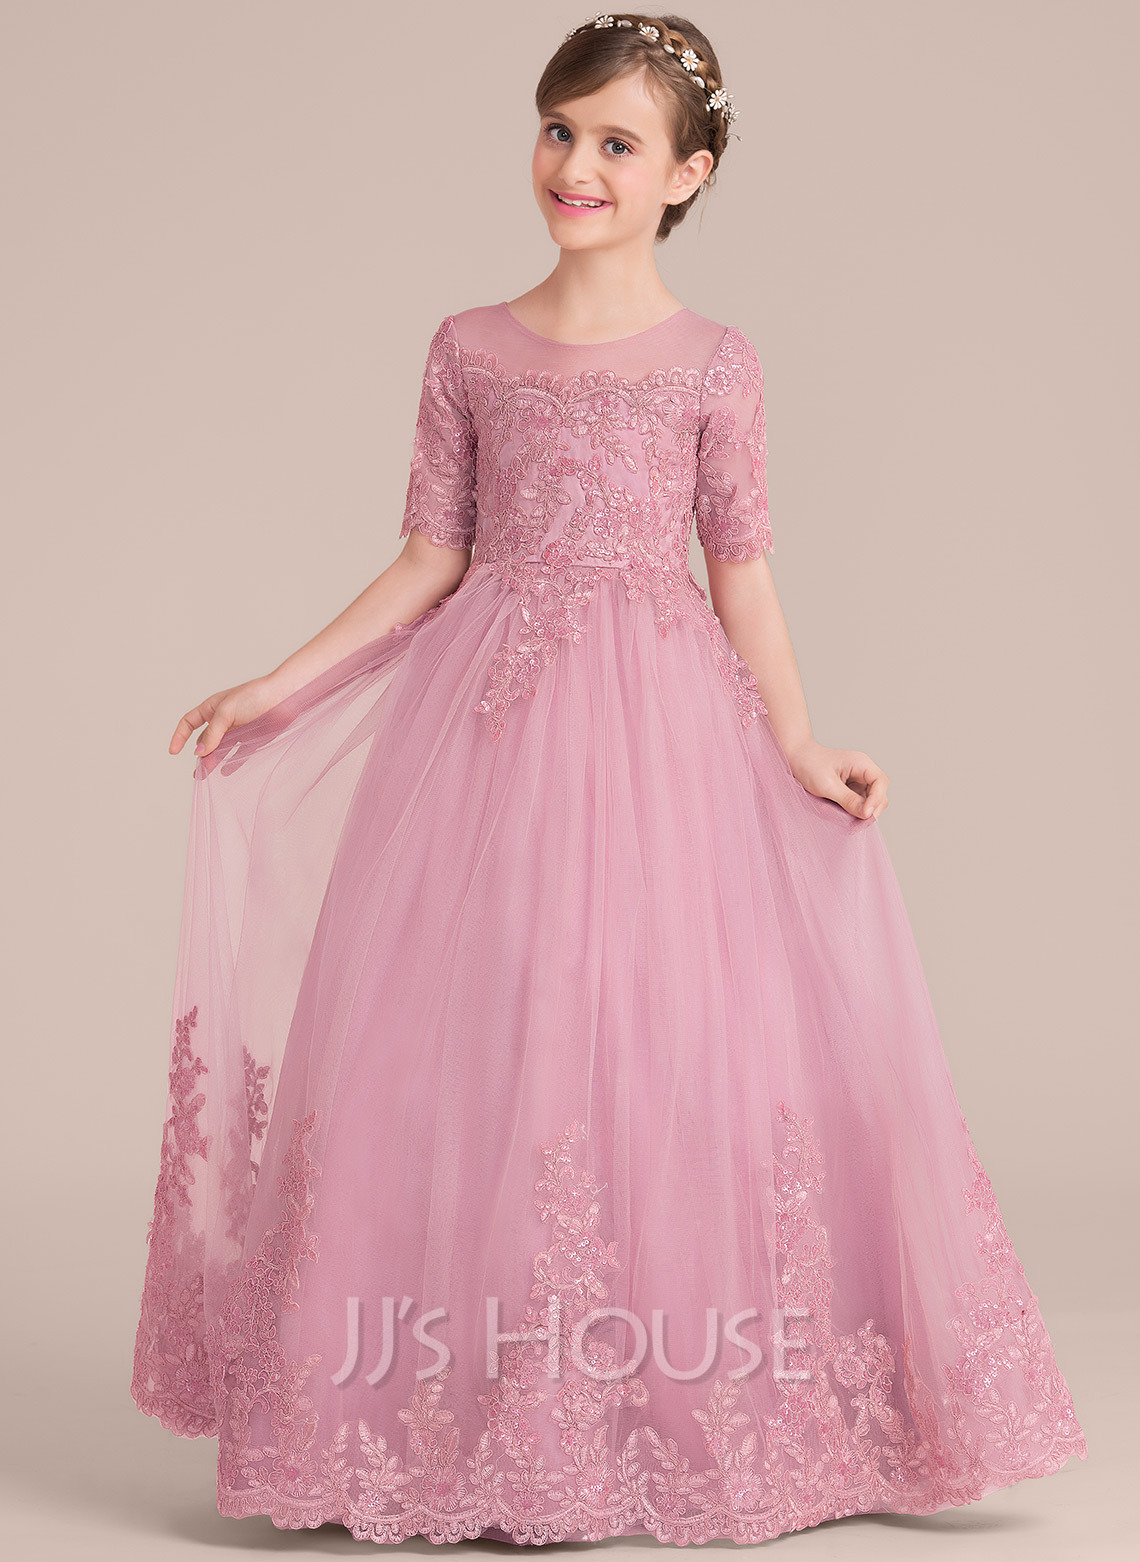 Custom made junior bridesmaid dresses jjshouse scoop neck floor length tulle lace junior bridesmaid dress with sequins ombrellifo Image collections